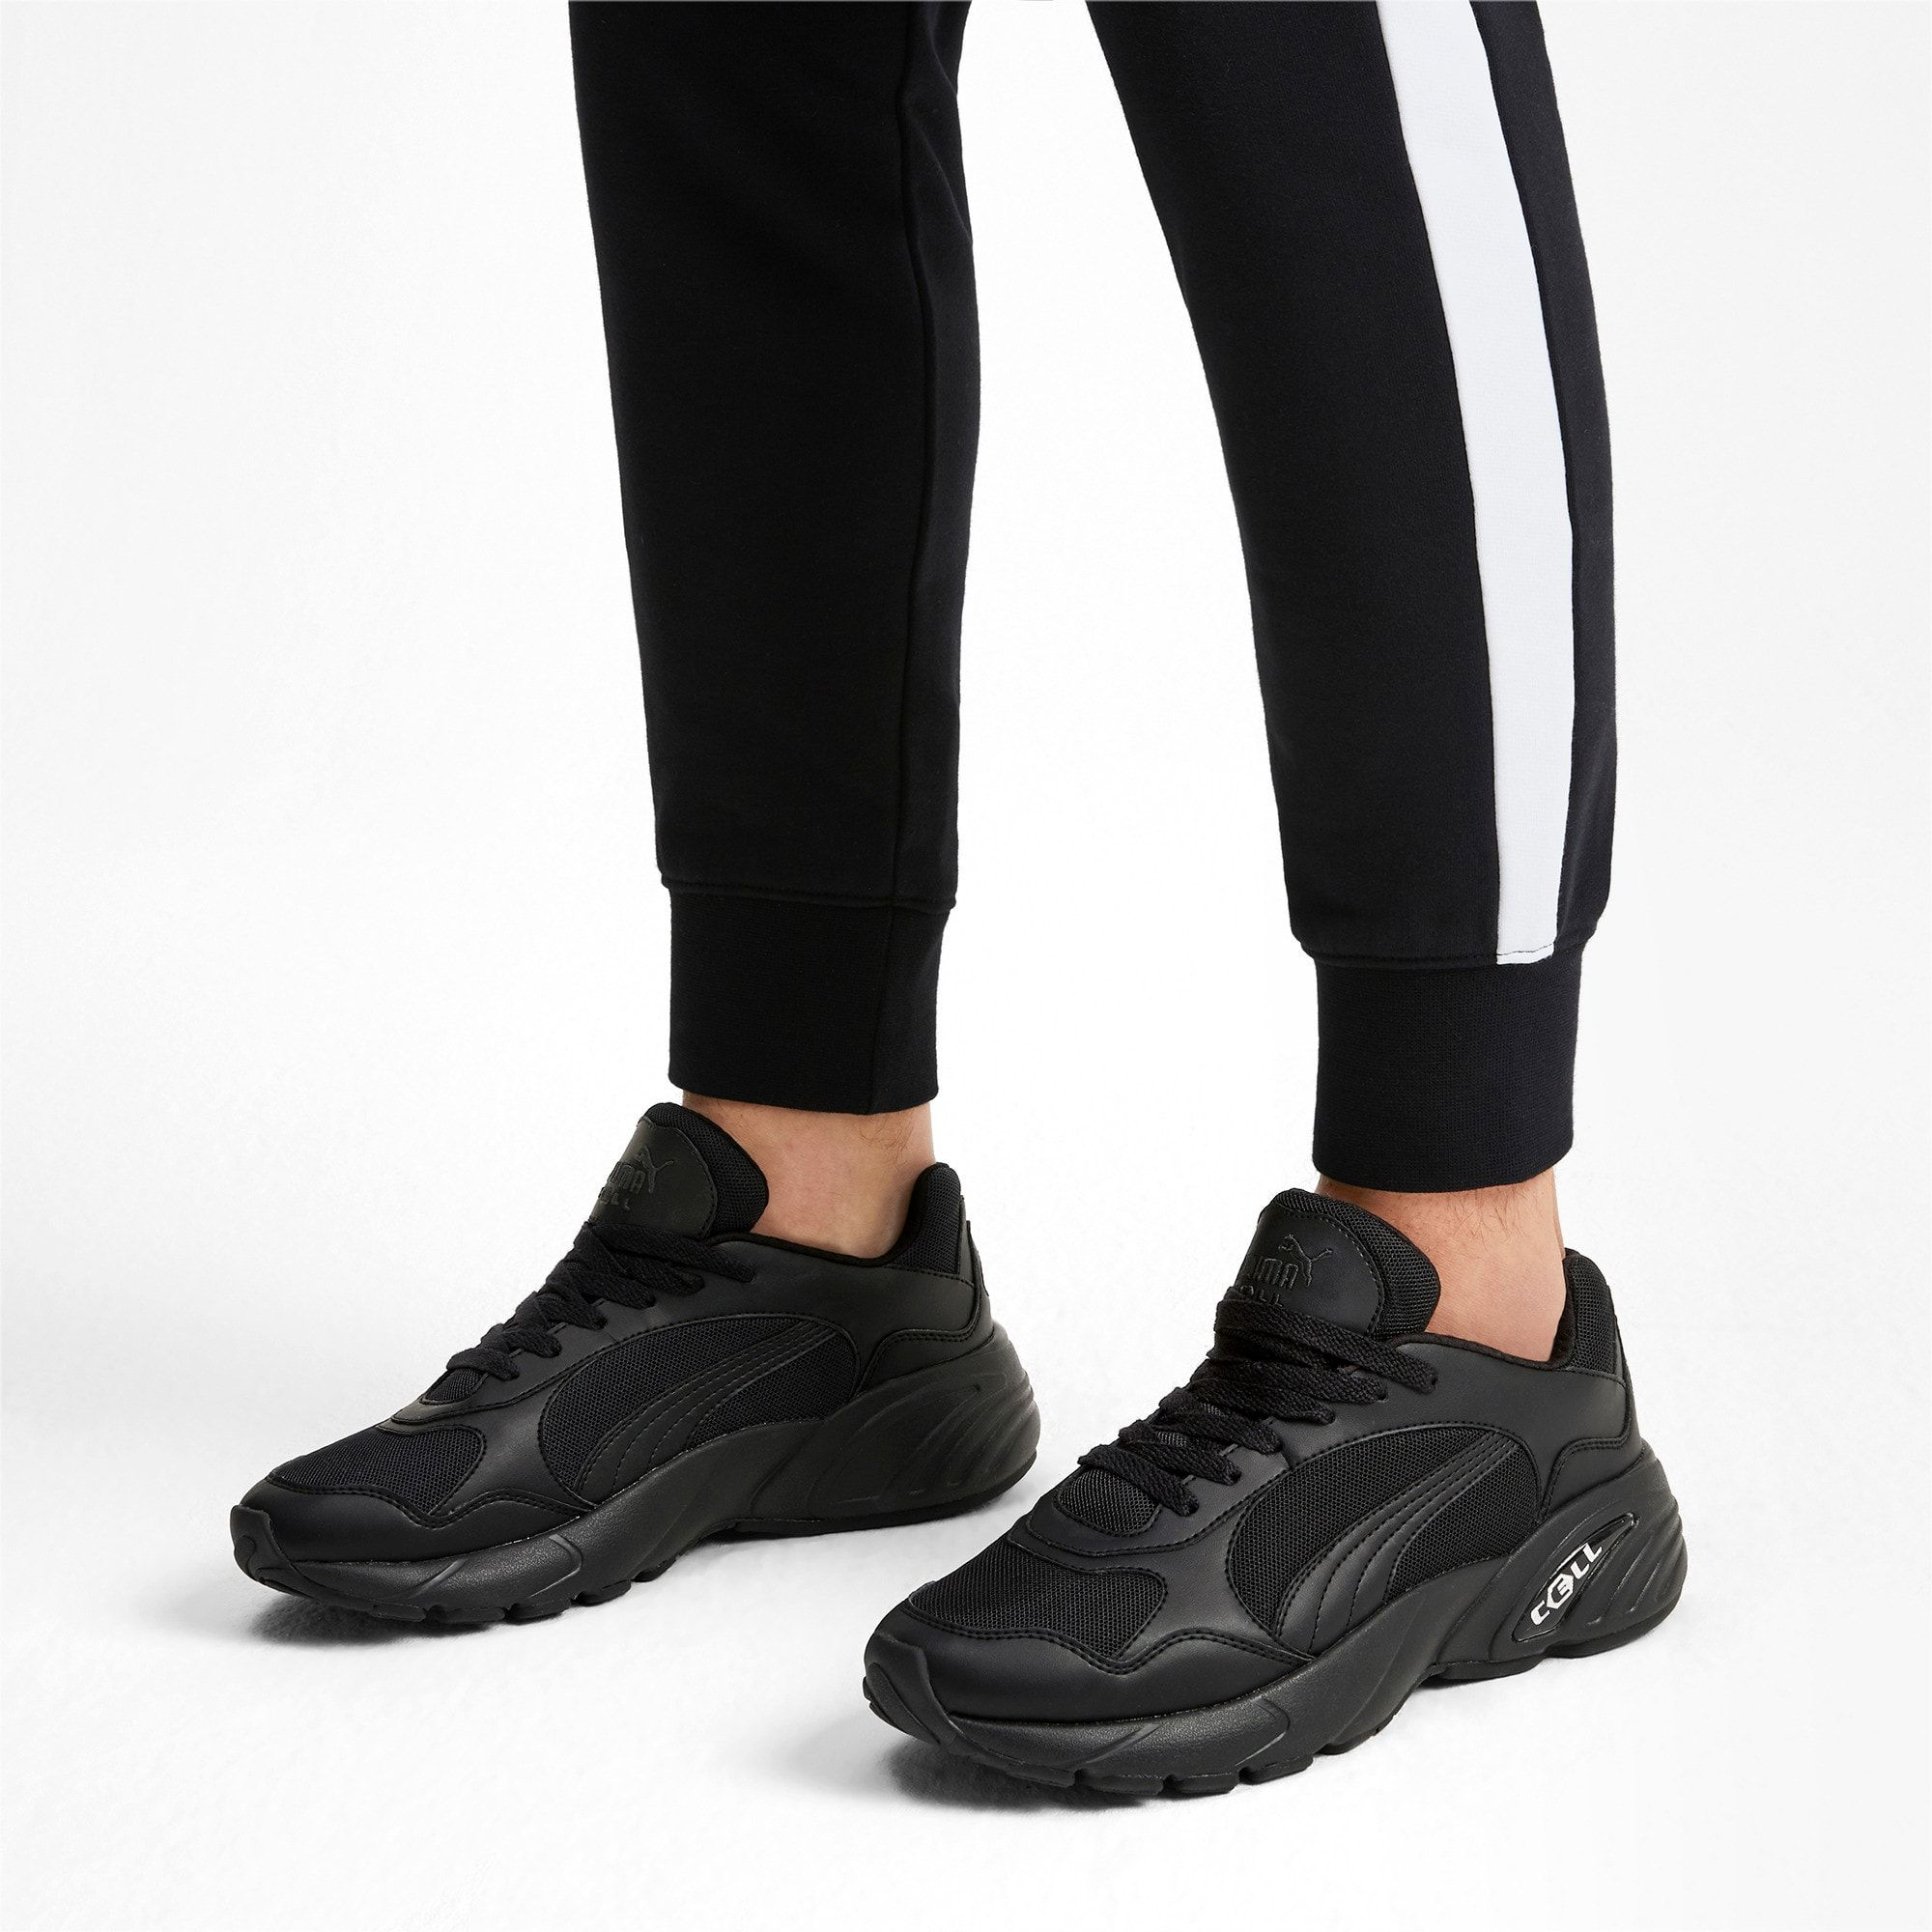 Men's PUMA Cell Viper Trainers in Black size 10.5 | All ...